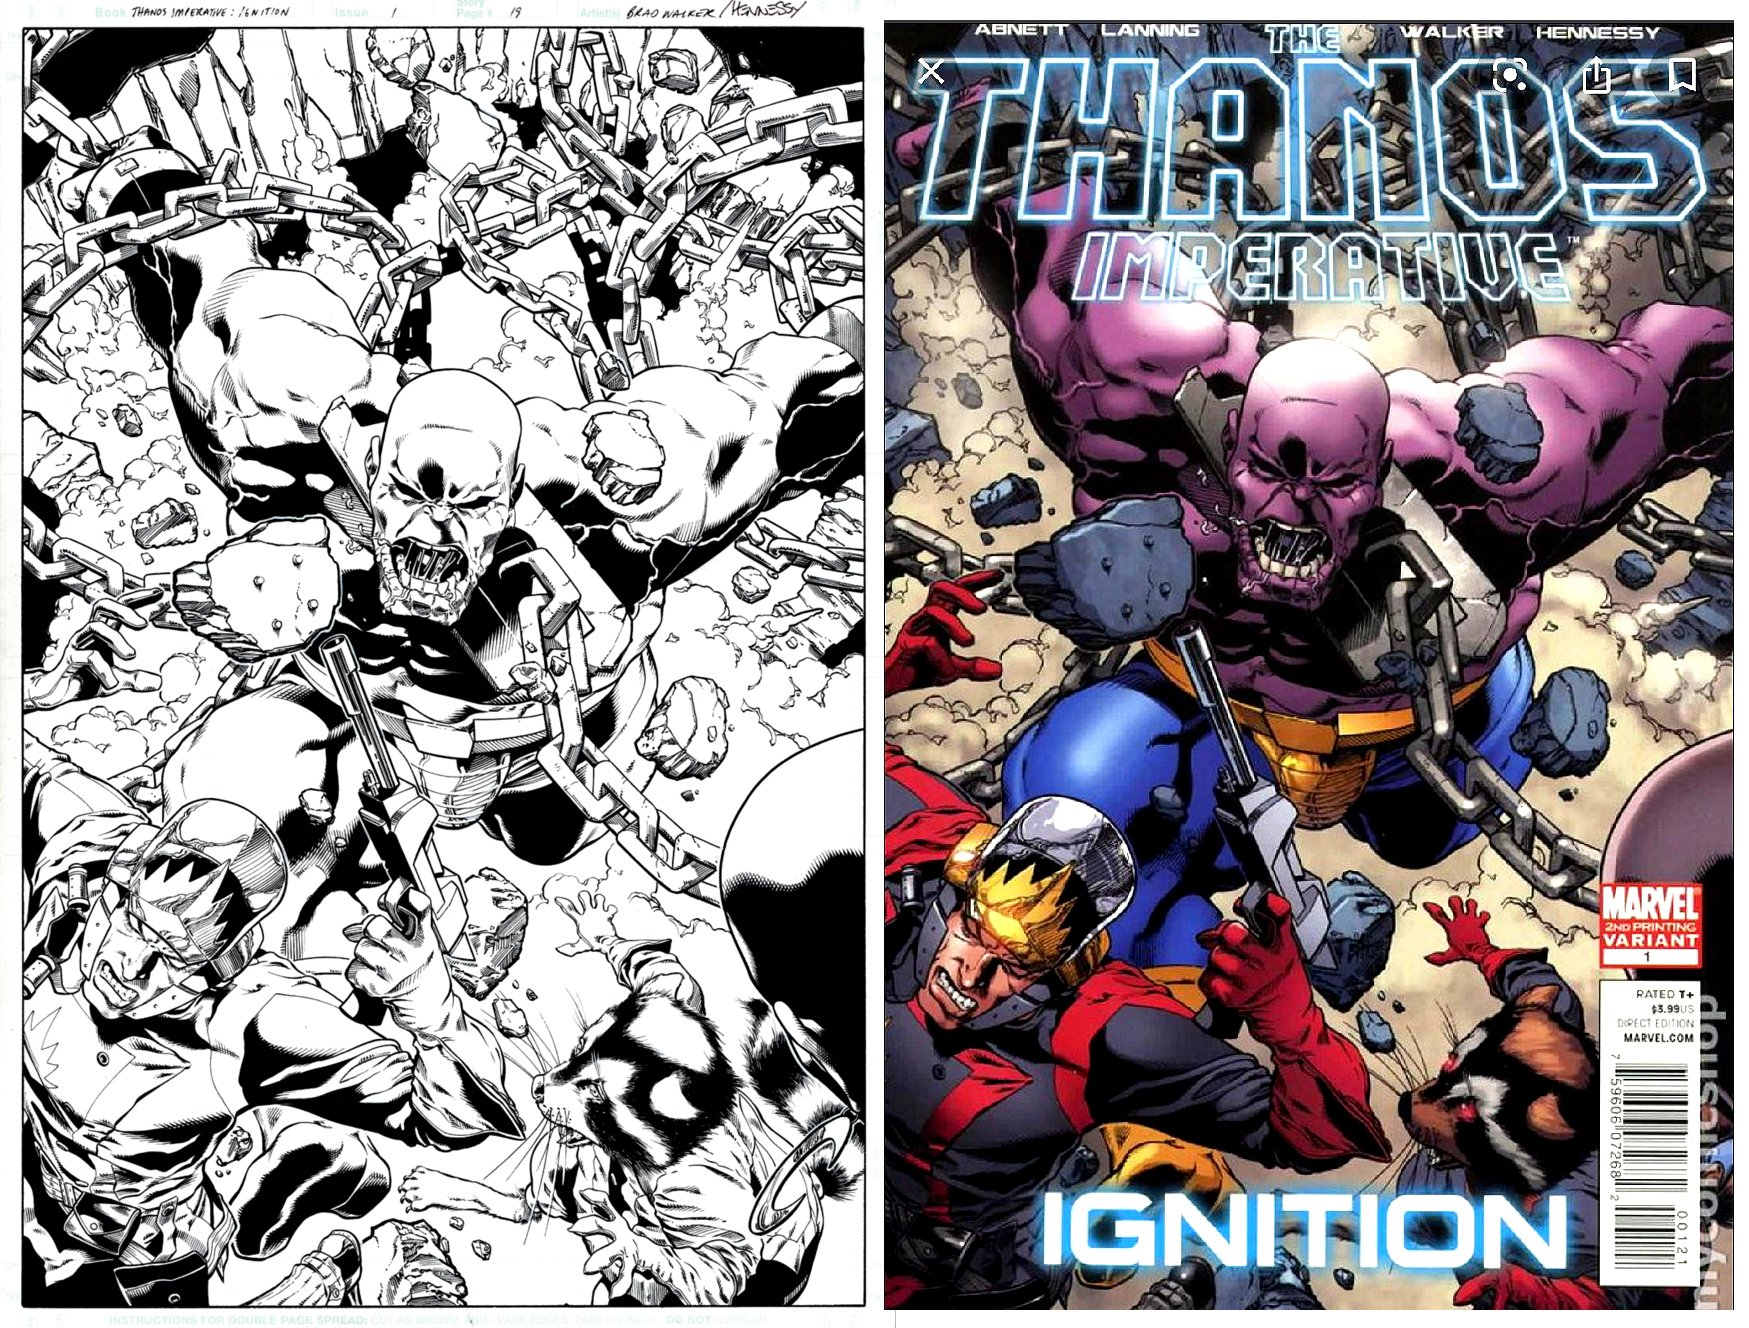 Thanos Imperative Ignition #1 Cover & Splash (SOLD LIVE ON 'DUELING DEALERS OF COMIC ART' EPISODE #8 PODCAST ON 3-17-2021 (RE-WATCH OUR LIVE ART PODCAST HERE!)